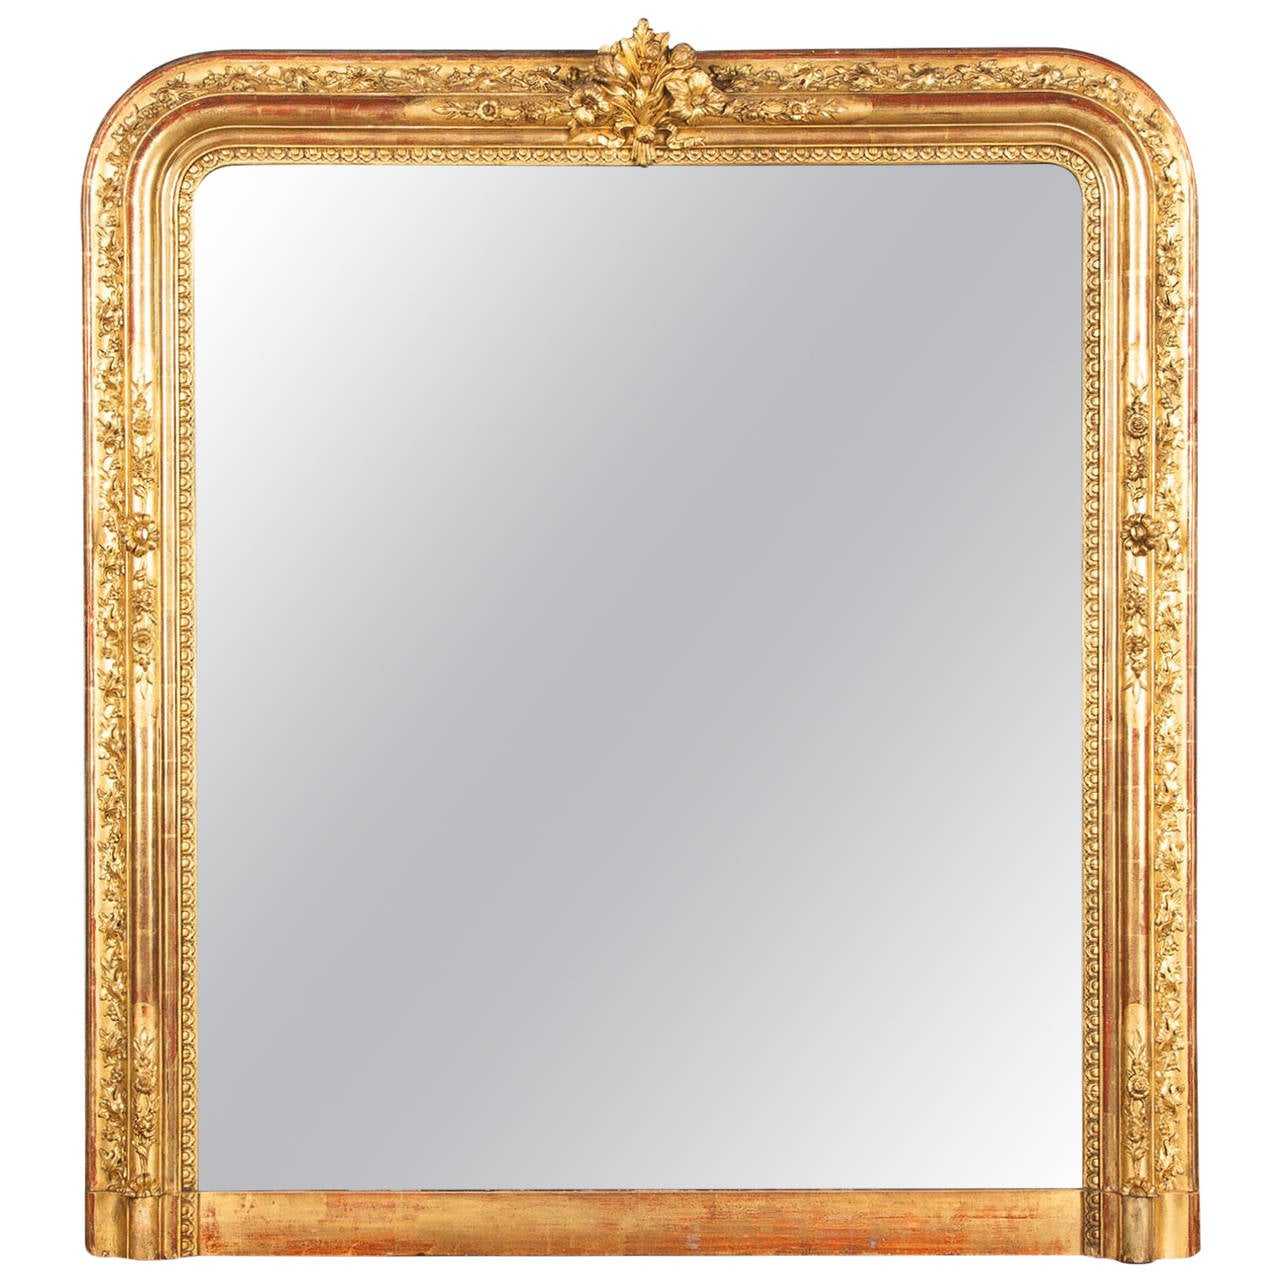 French Napoleon III Gold Leaf Mantel Mirror, 1870s